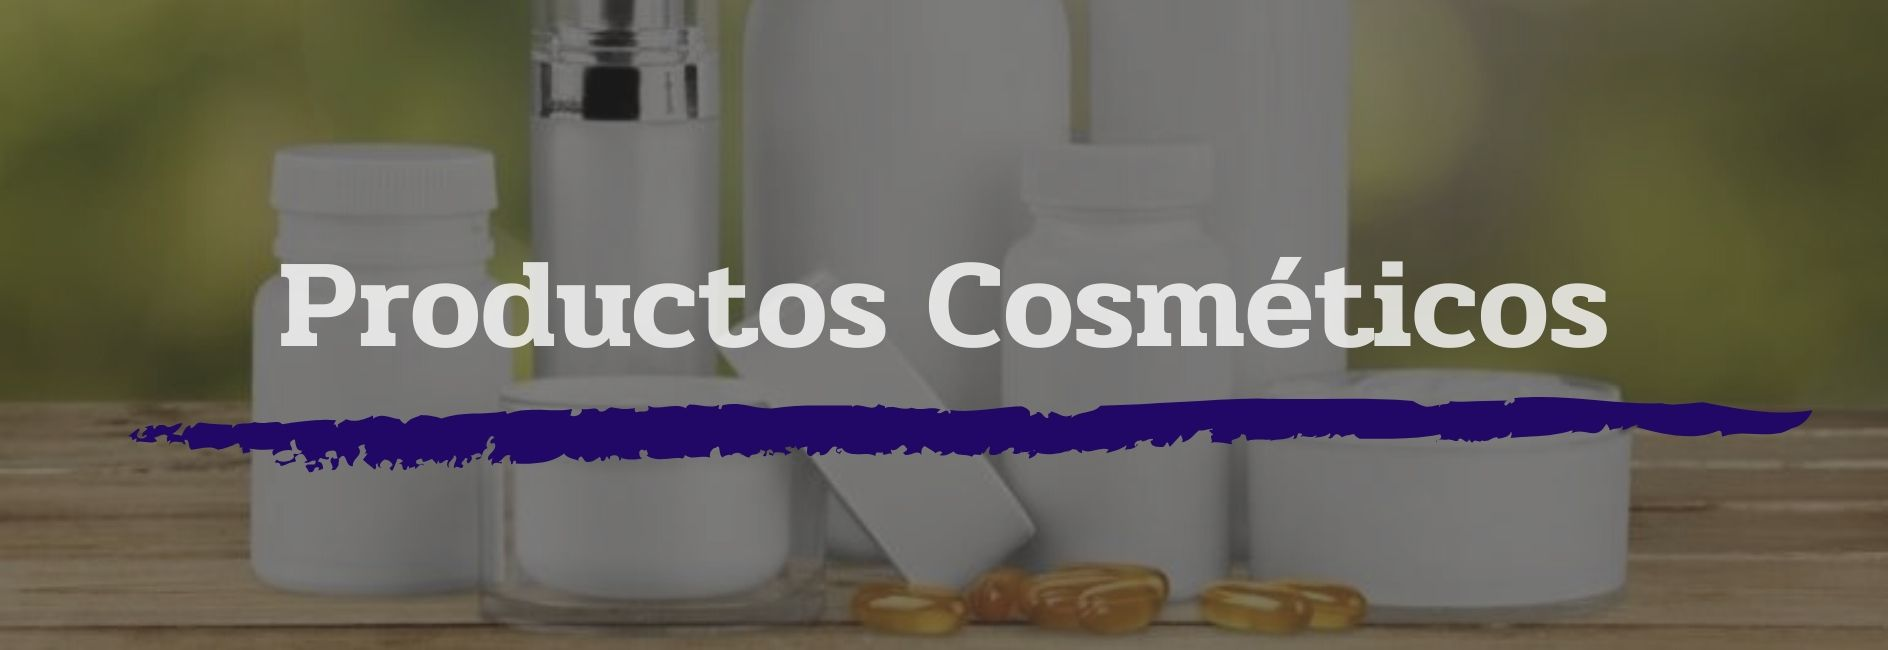 productos cosmeticos